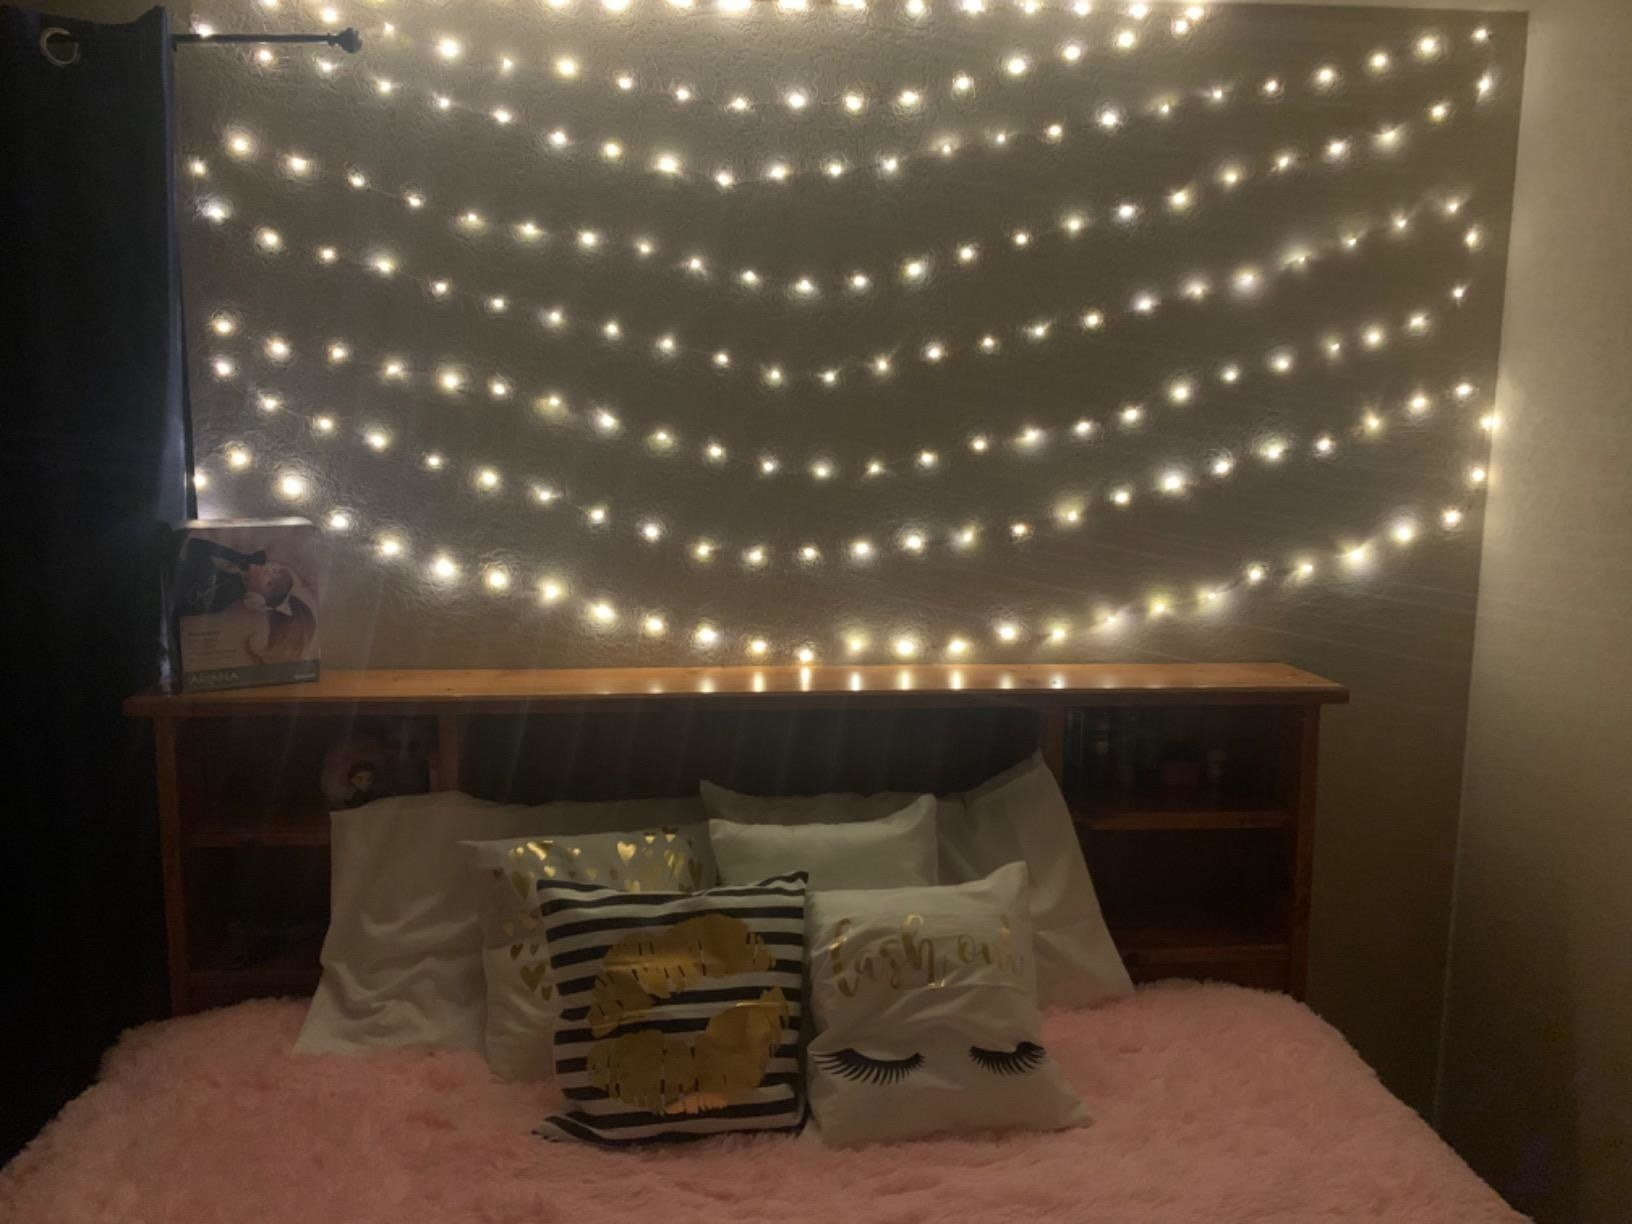 A reviewer showing the string lights hanged in rows above a bed